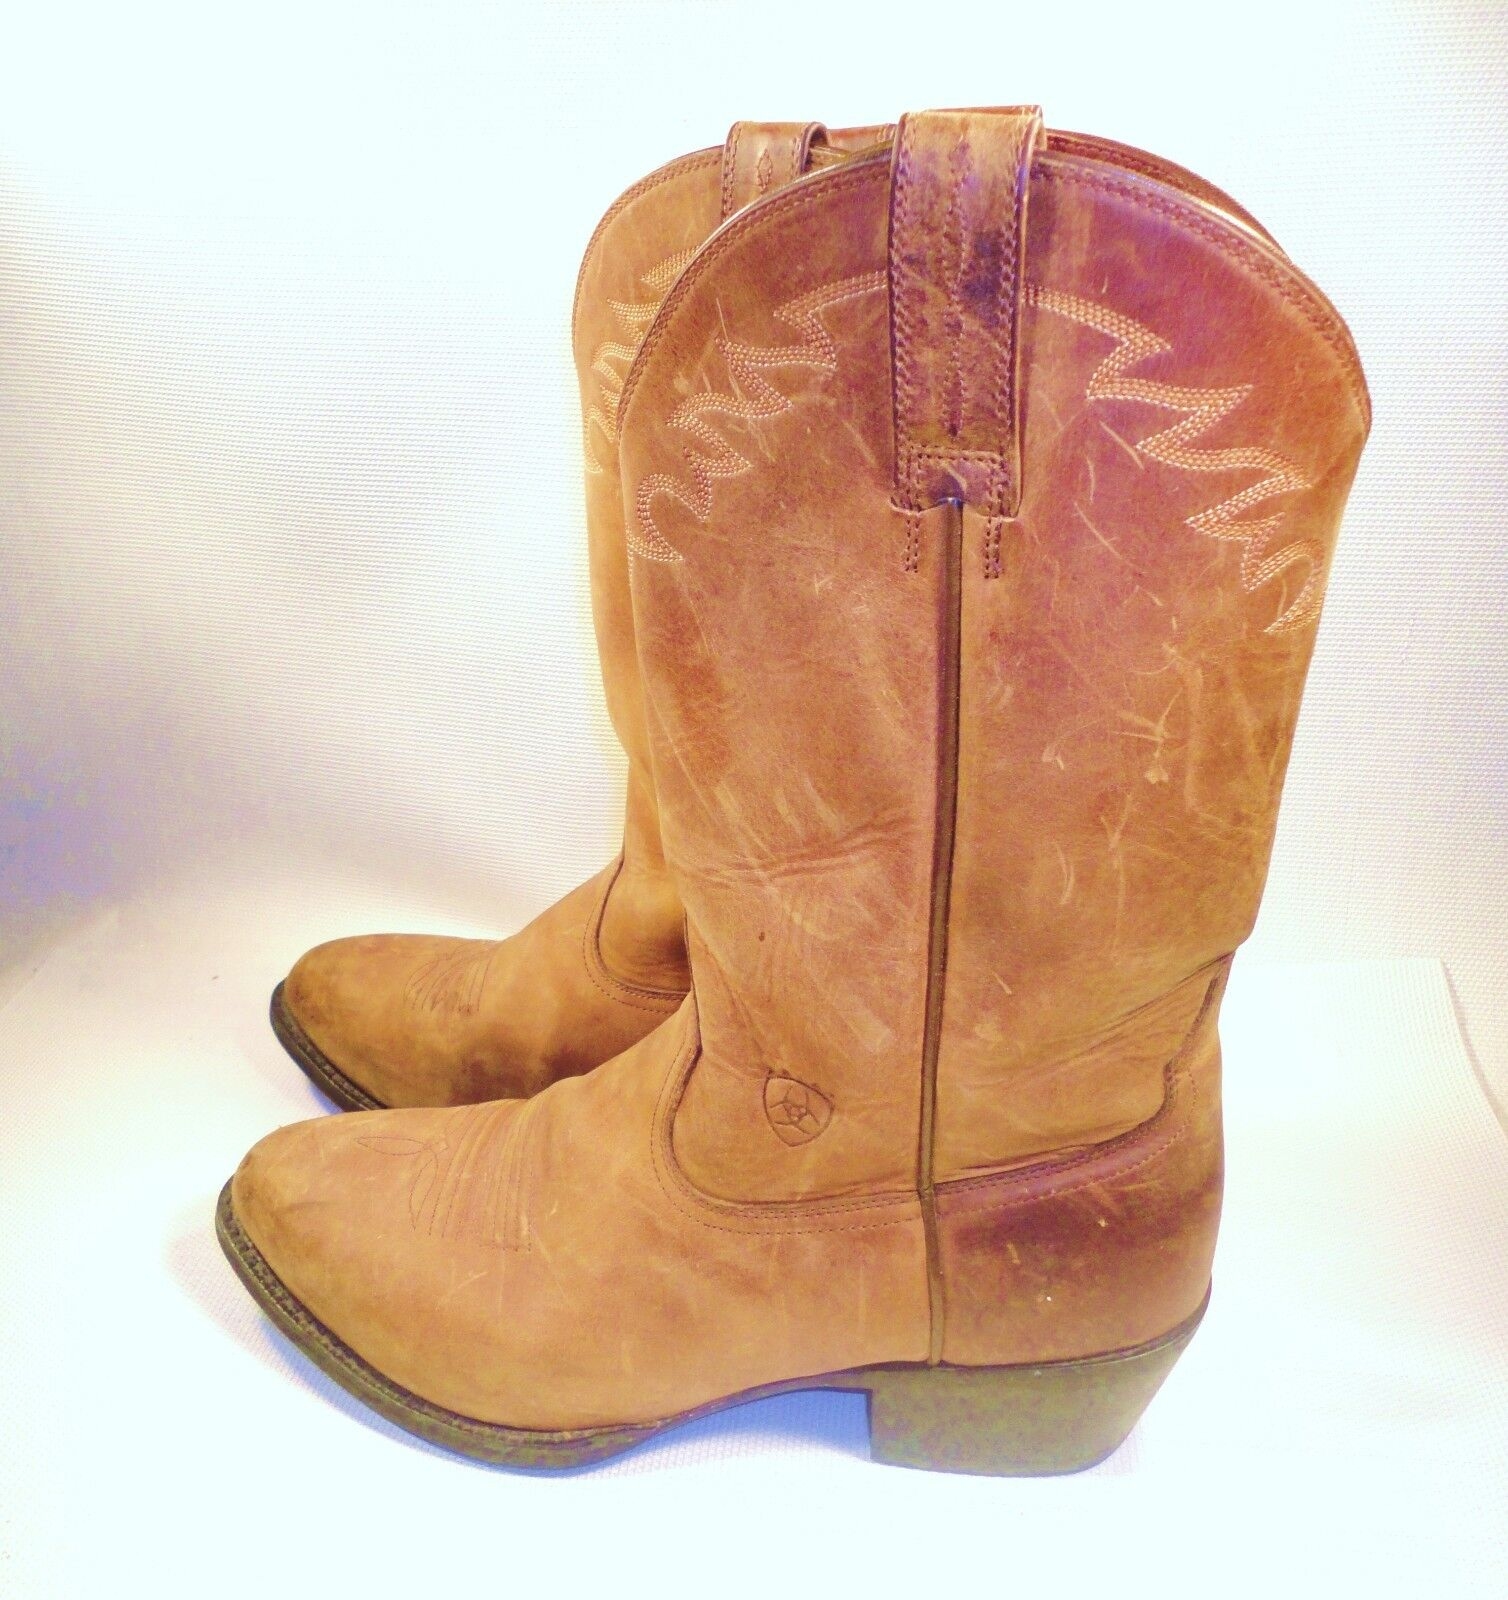 Ariat Sedona  Distressed Western Boot  Size 11 EE